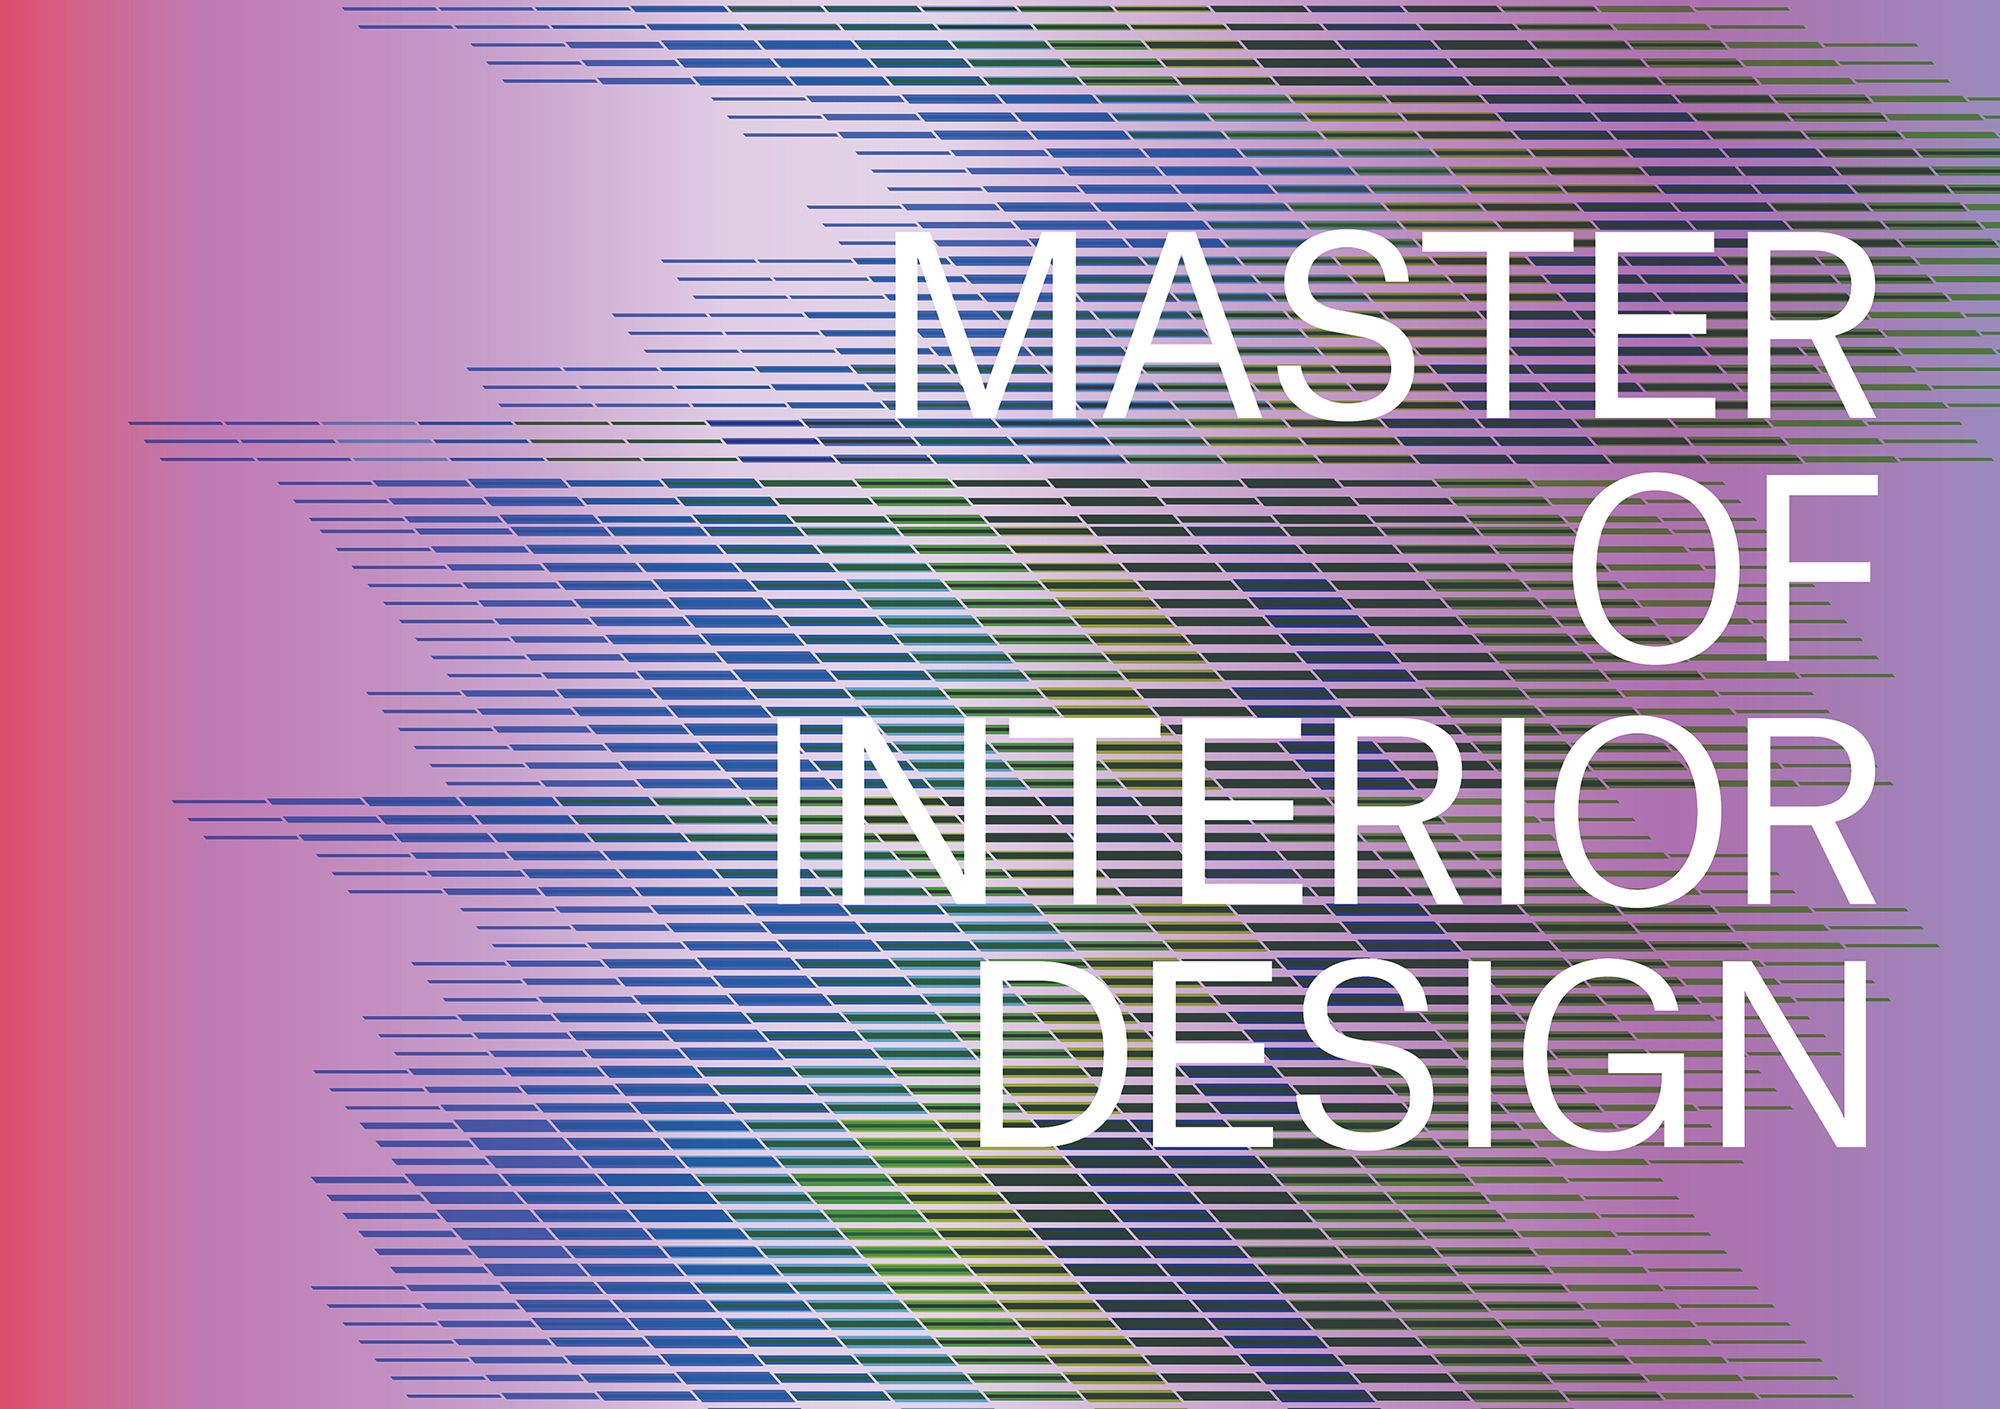 Graduate degrees texas architecture utsoa - Interior design masters programs ...